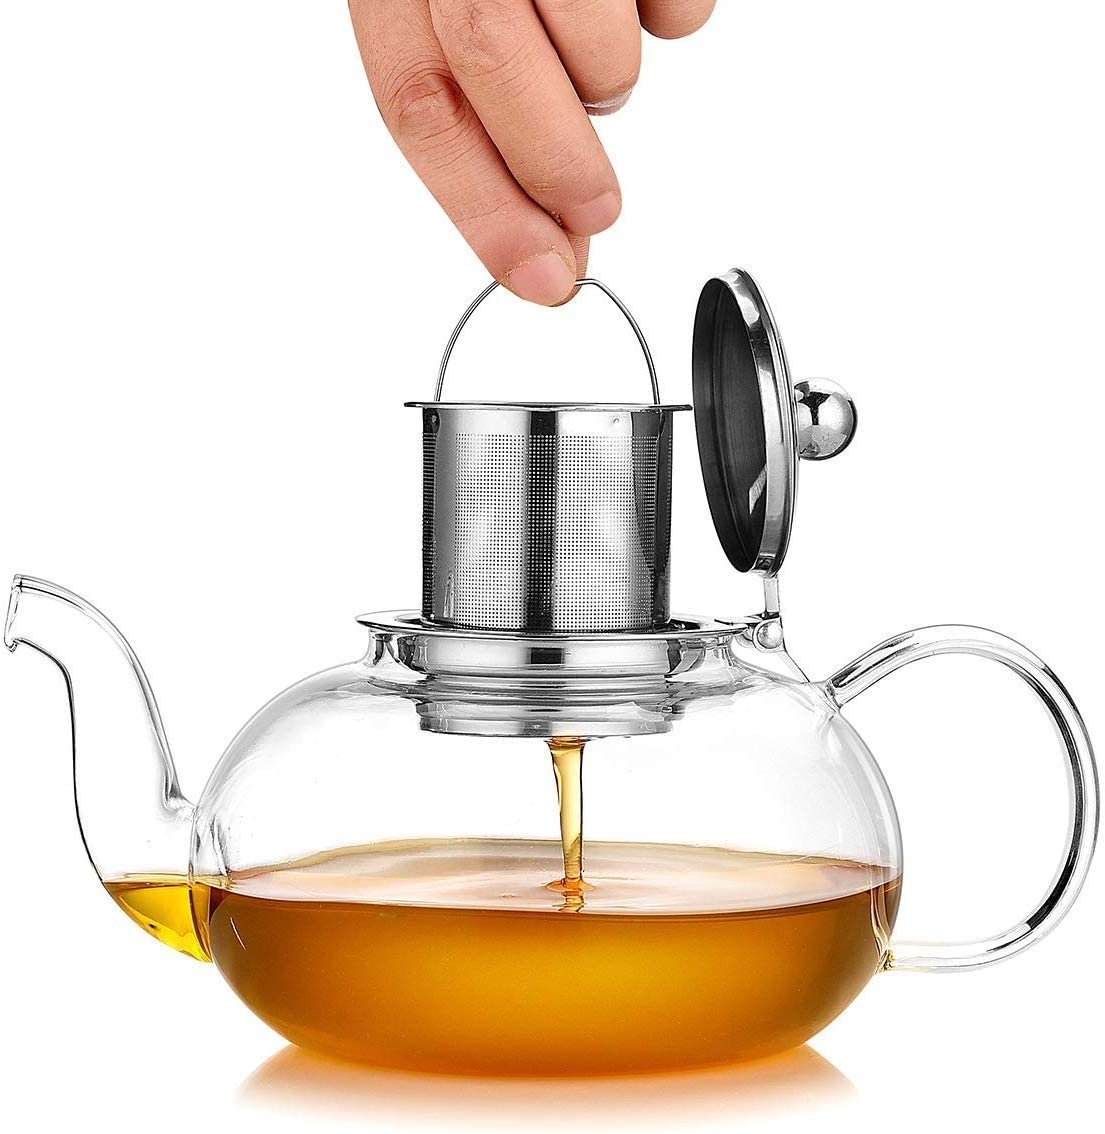 Amazon Com Artcome 1000ml 34oz Glass Teapot With Removable Infuser Stovetop Safe Teapot Blooming And Loose Leaf Tea Pots Teapots